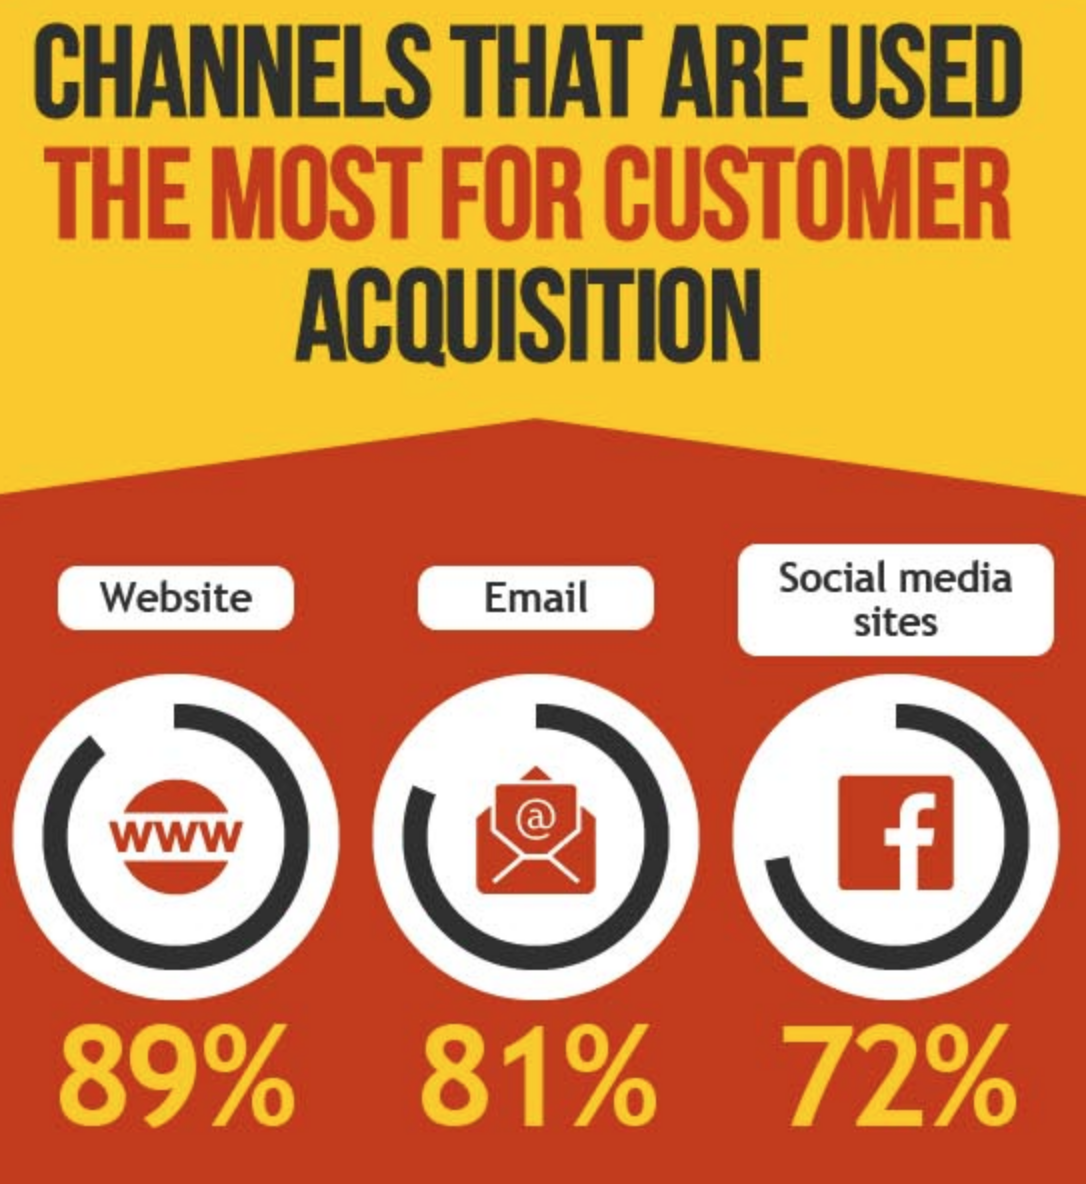 channels-that-are-used-for-customer-acquisition